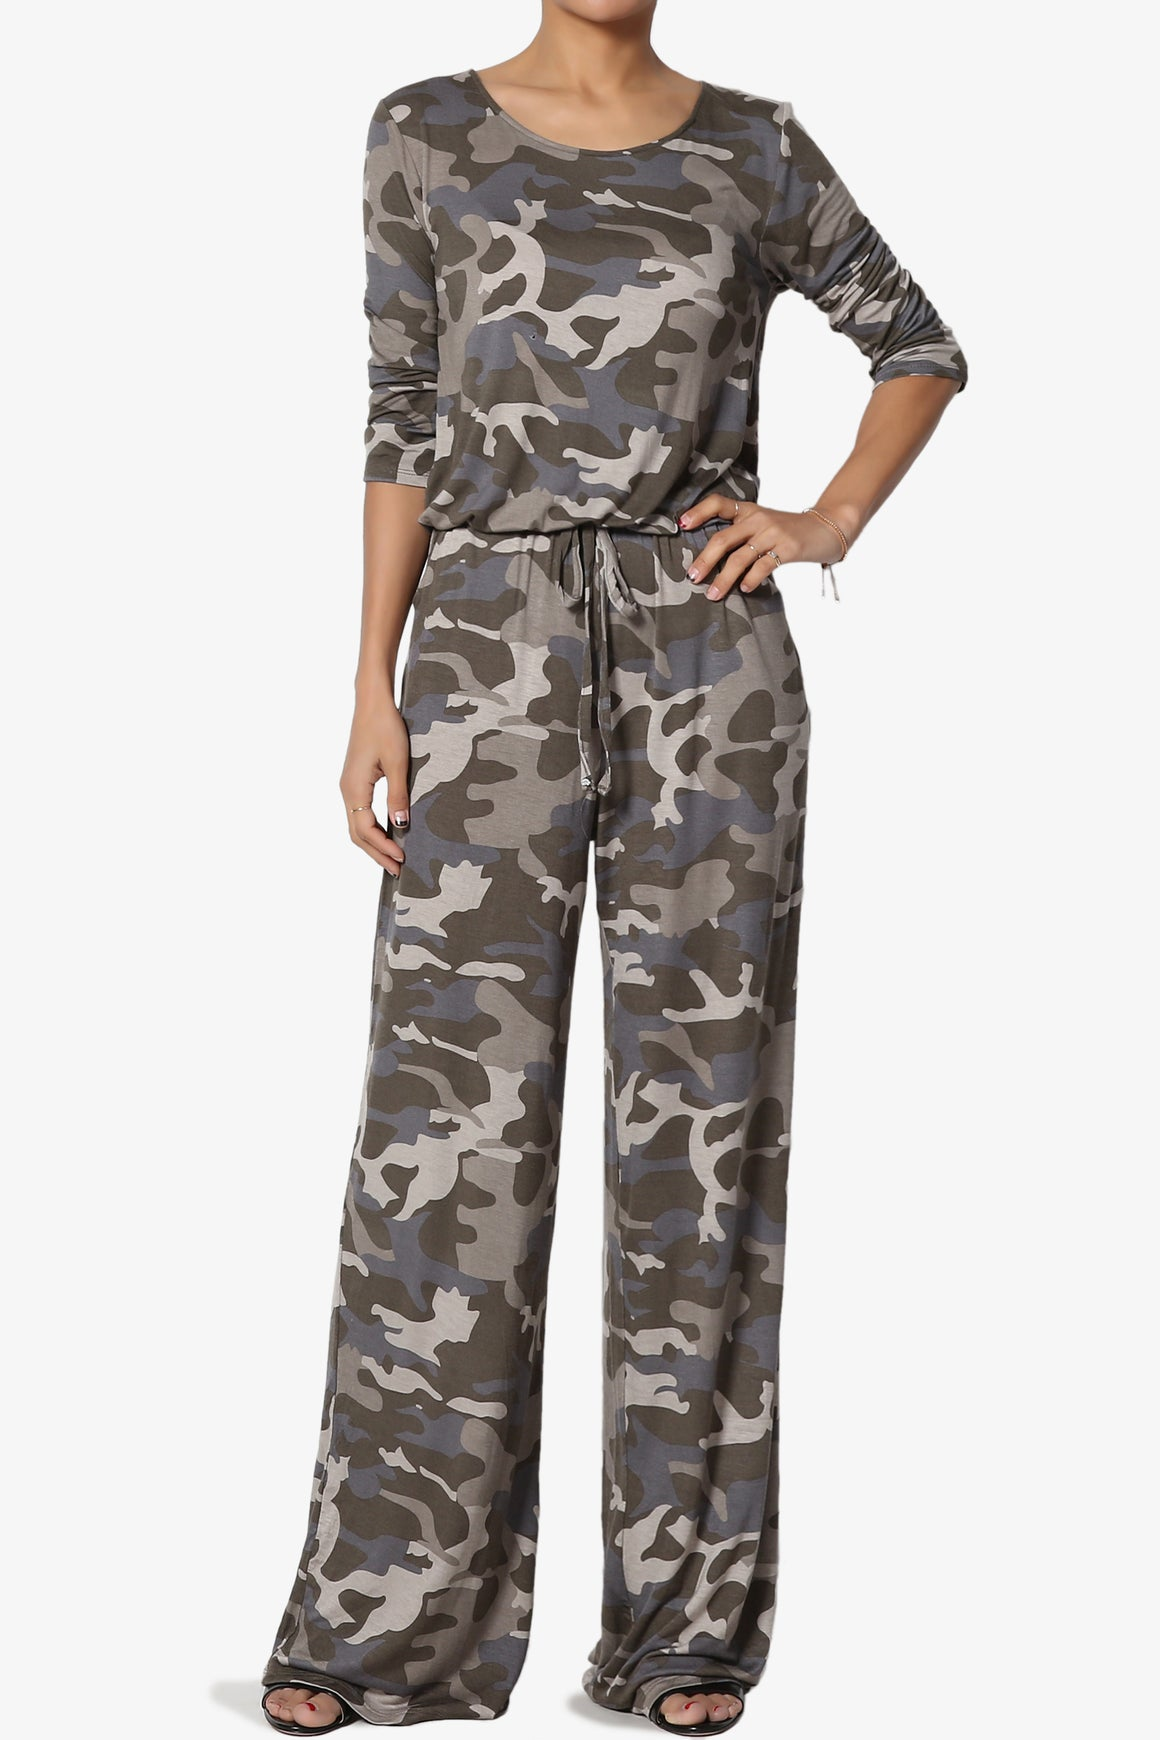 TheMogan Draped Woven Elastic Waist Wide Leg Pants in Floral Print with Stripe